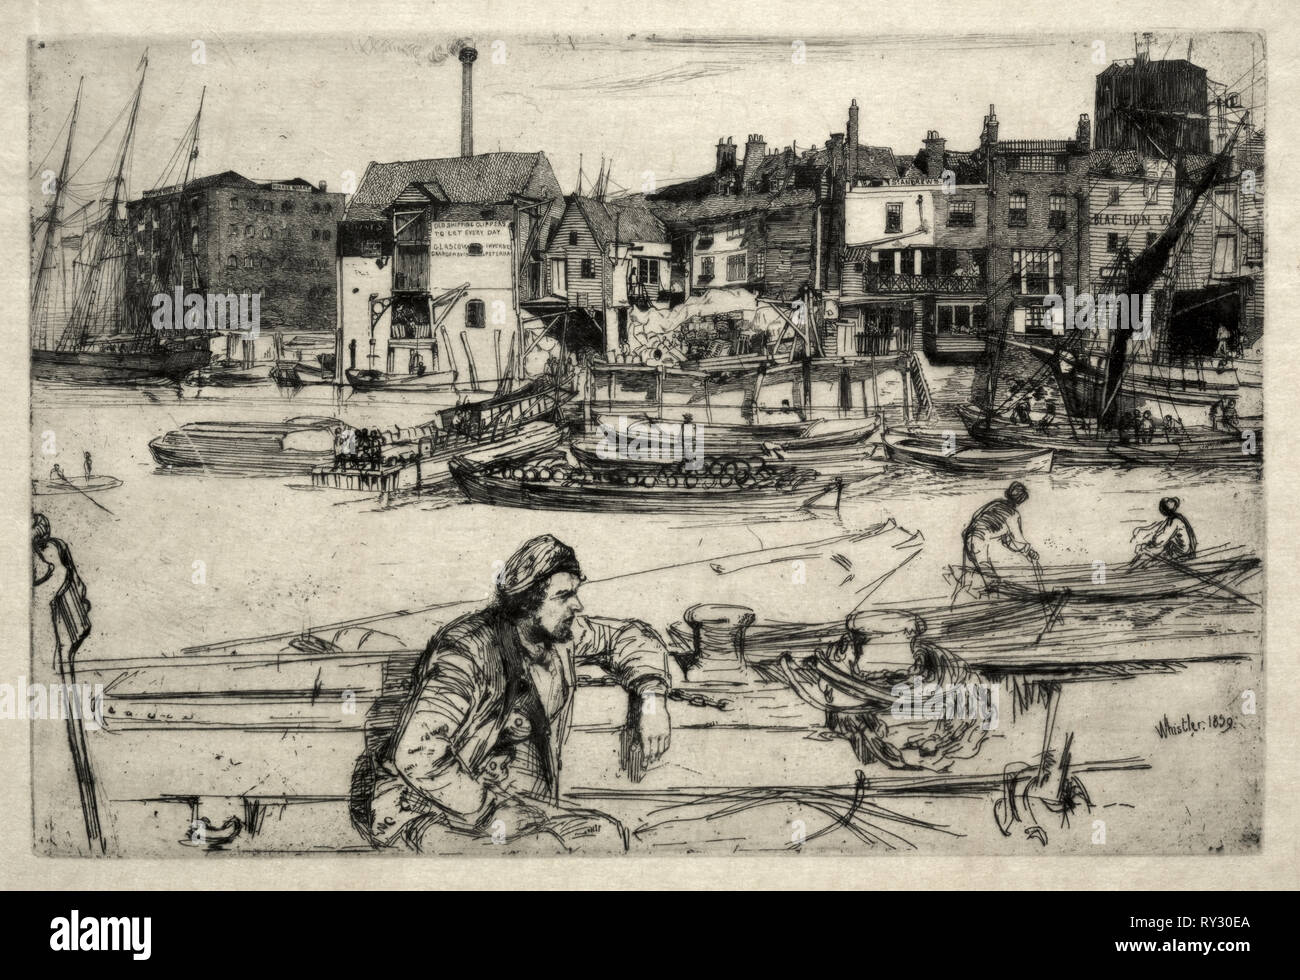 Black Lion Wharf, 1859. James McNeill Whistler (American, 1834-1903). Etching - Stock Image